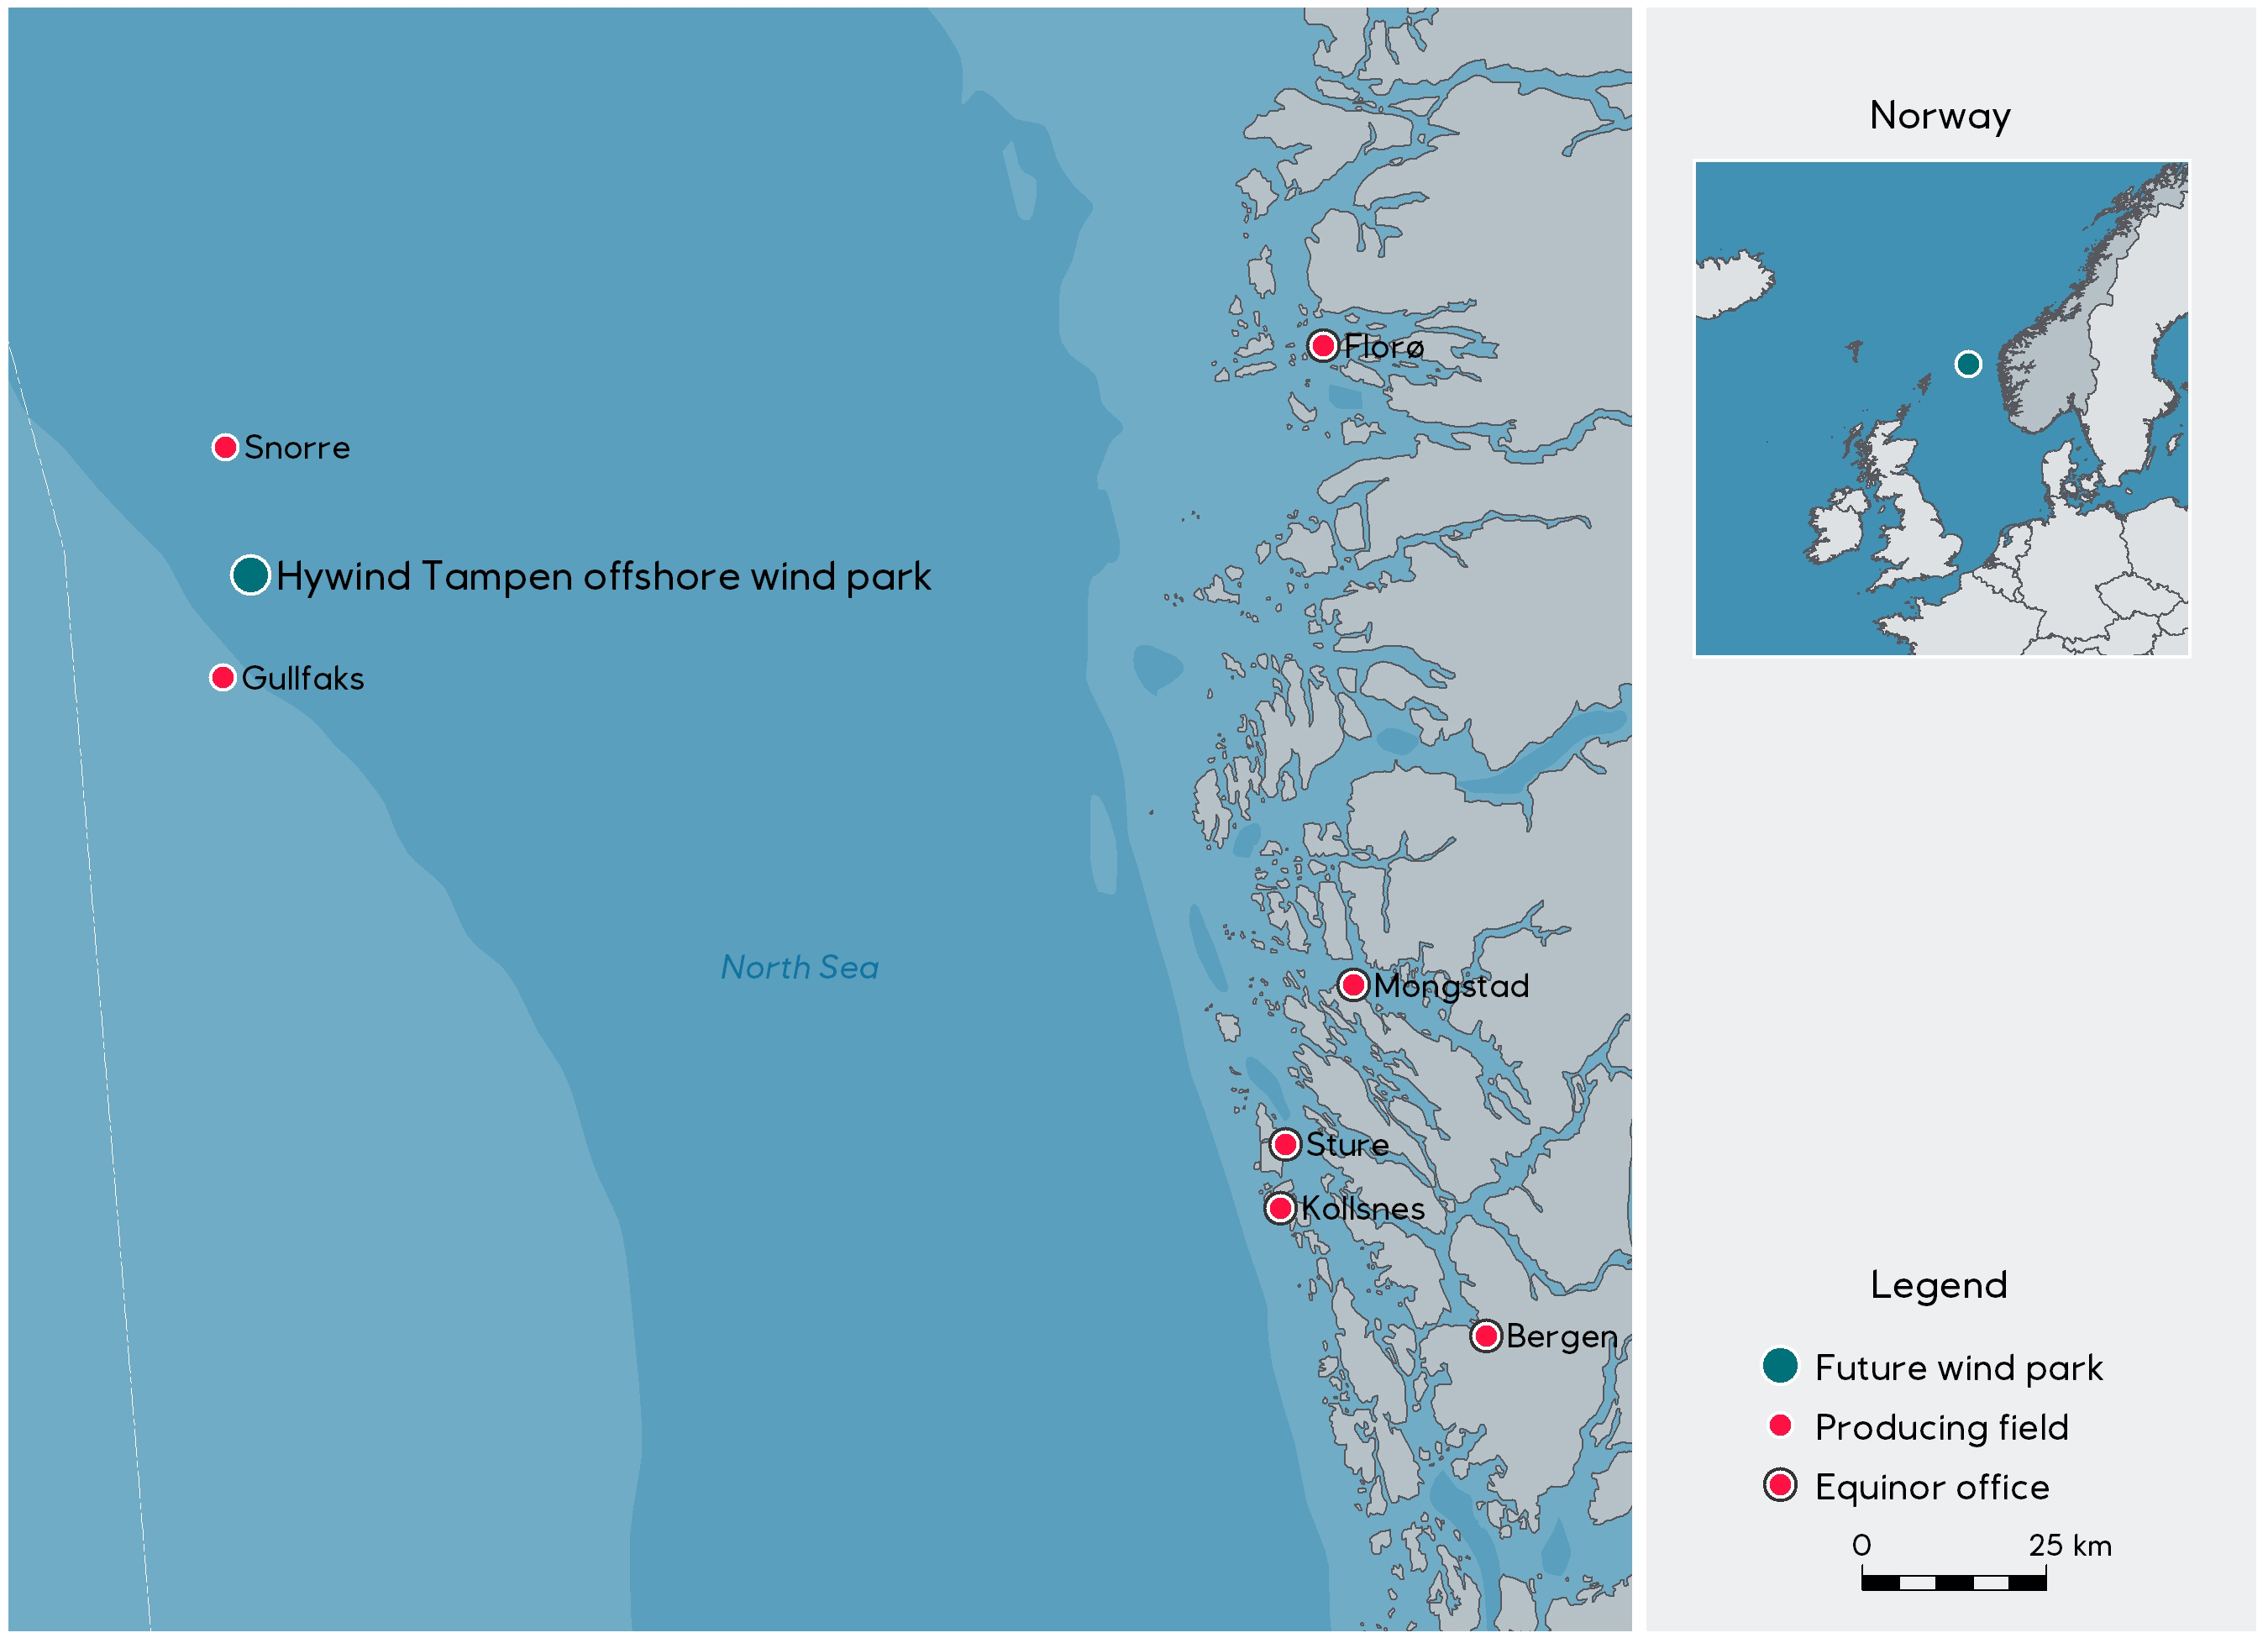 Wind farm being considered at Snorre and Gullfaks - Wind farm being